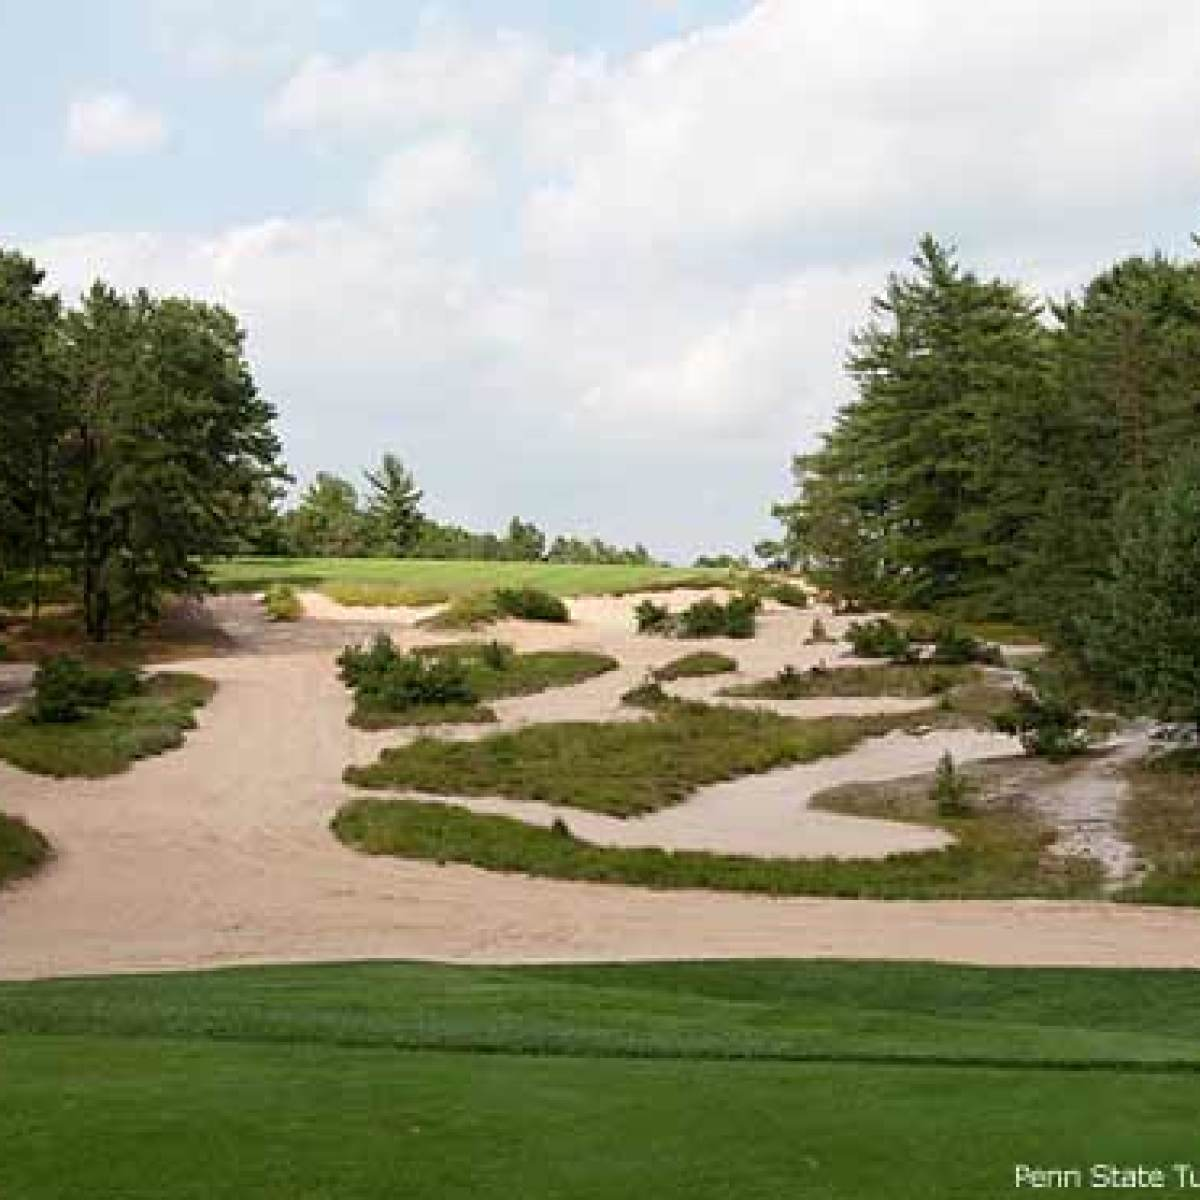 How to Get on New Jersey's Pine Valley Golf Course